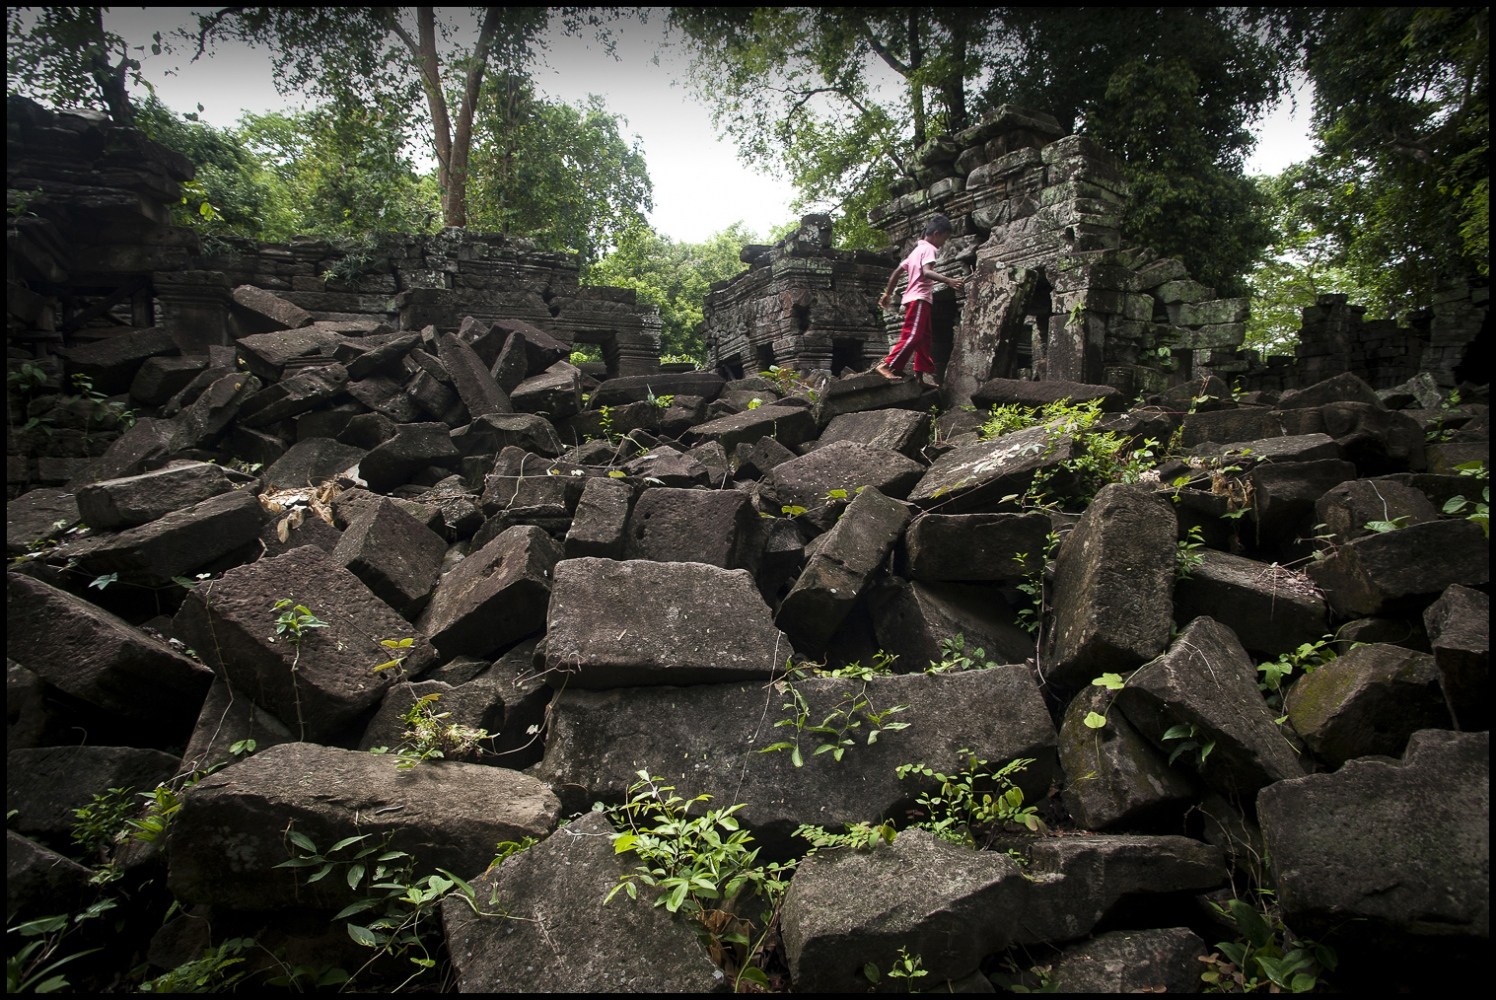 The Bas Relief at Banteay Chhmar Temple in Cambodia. Built by Khmer King Jayavarman 7th (1181-1219).